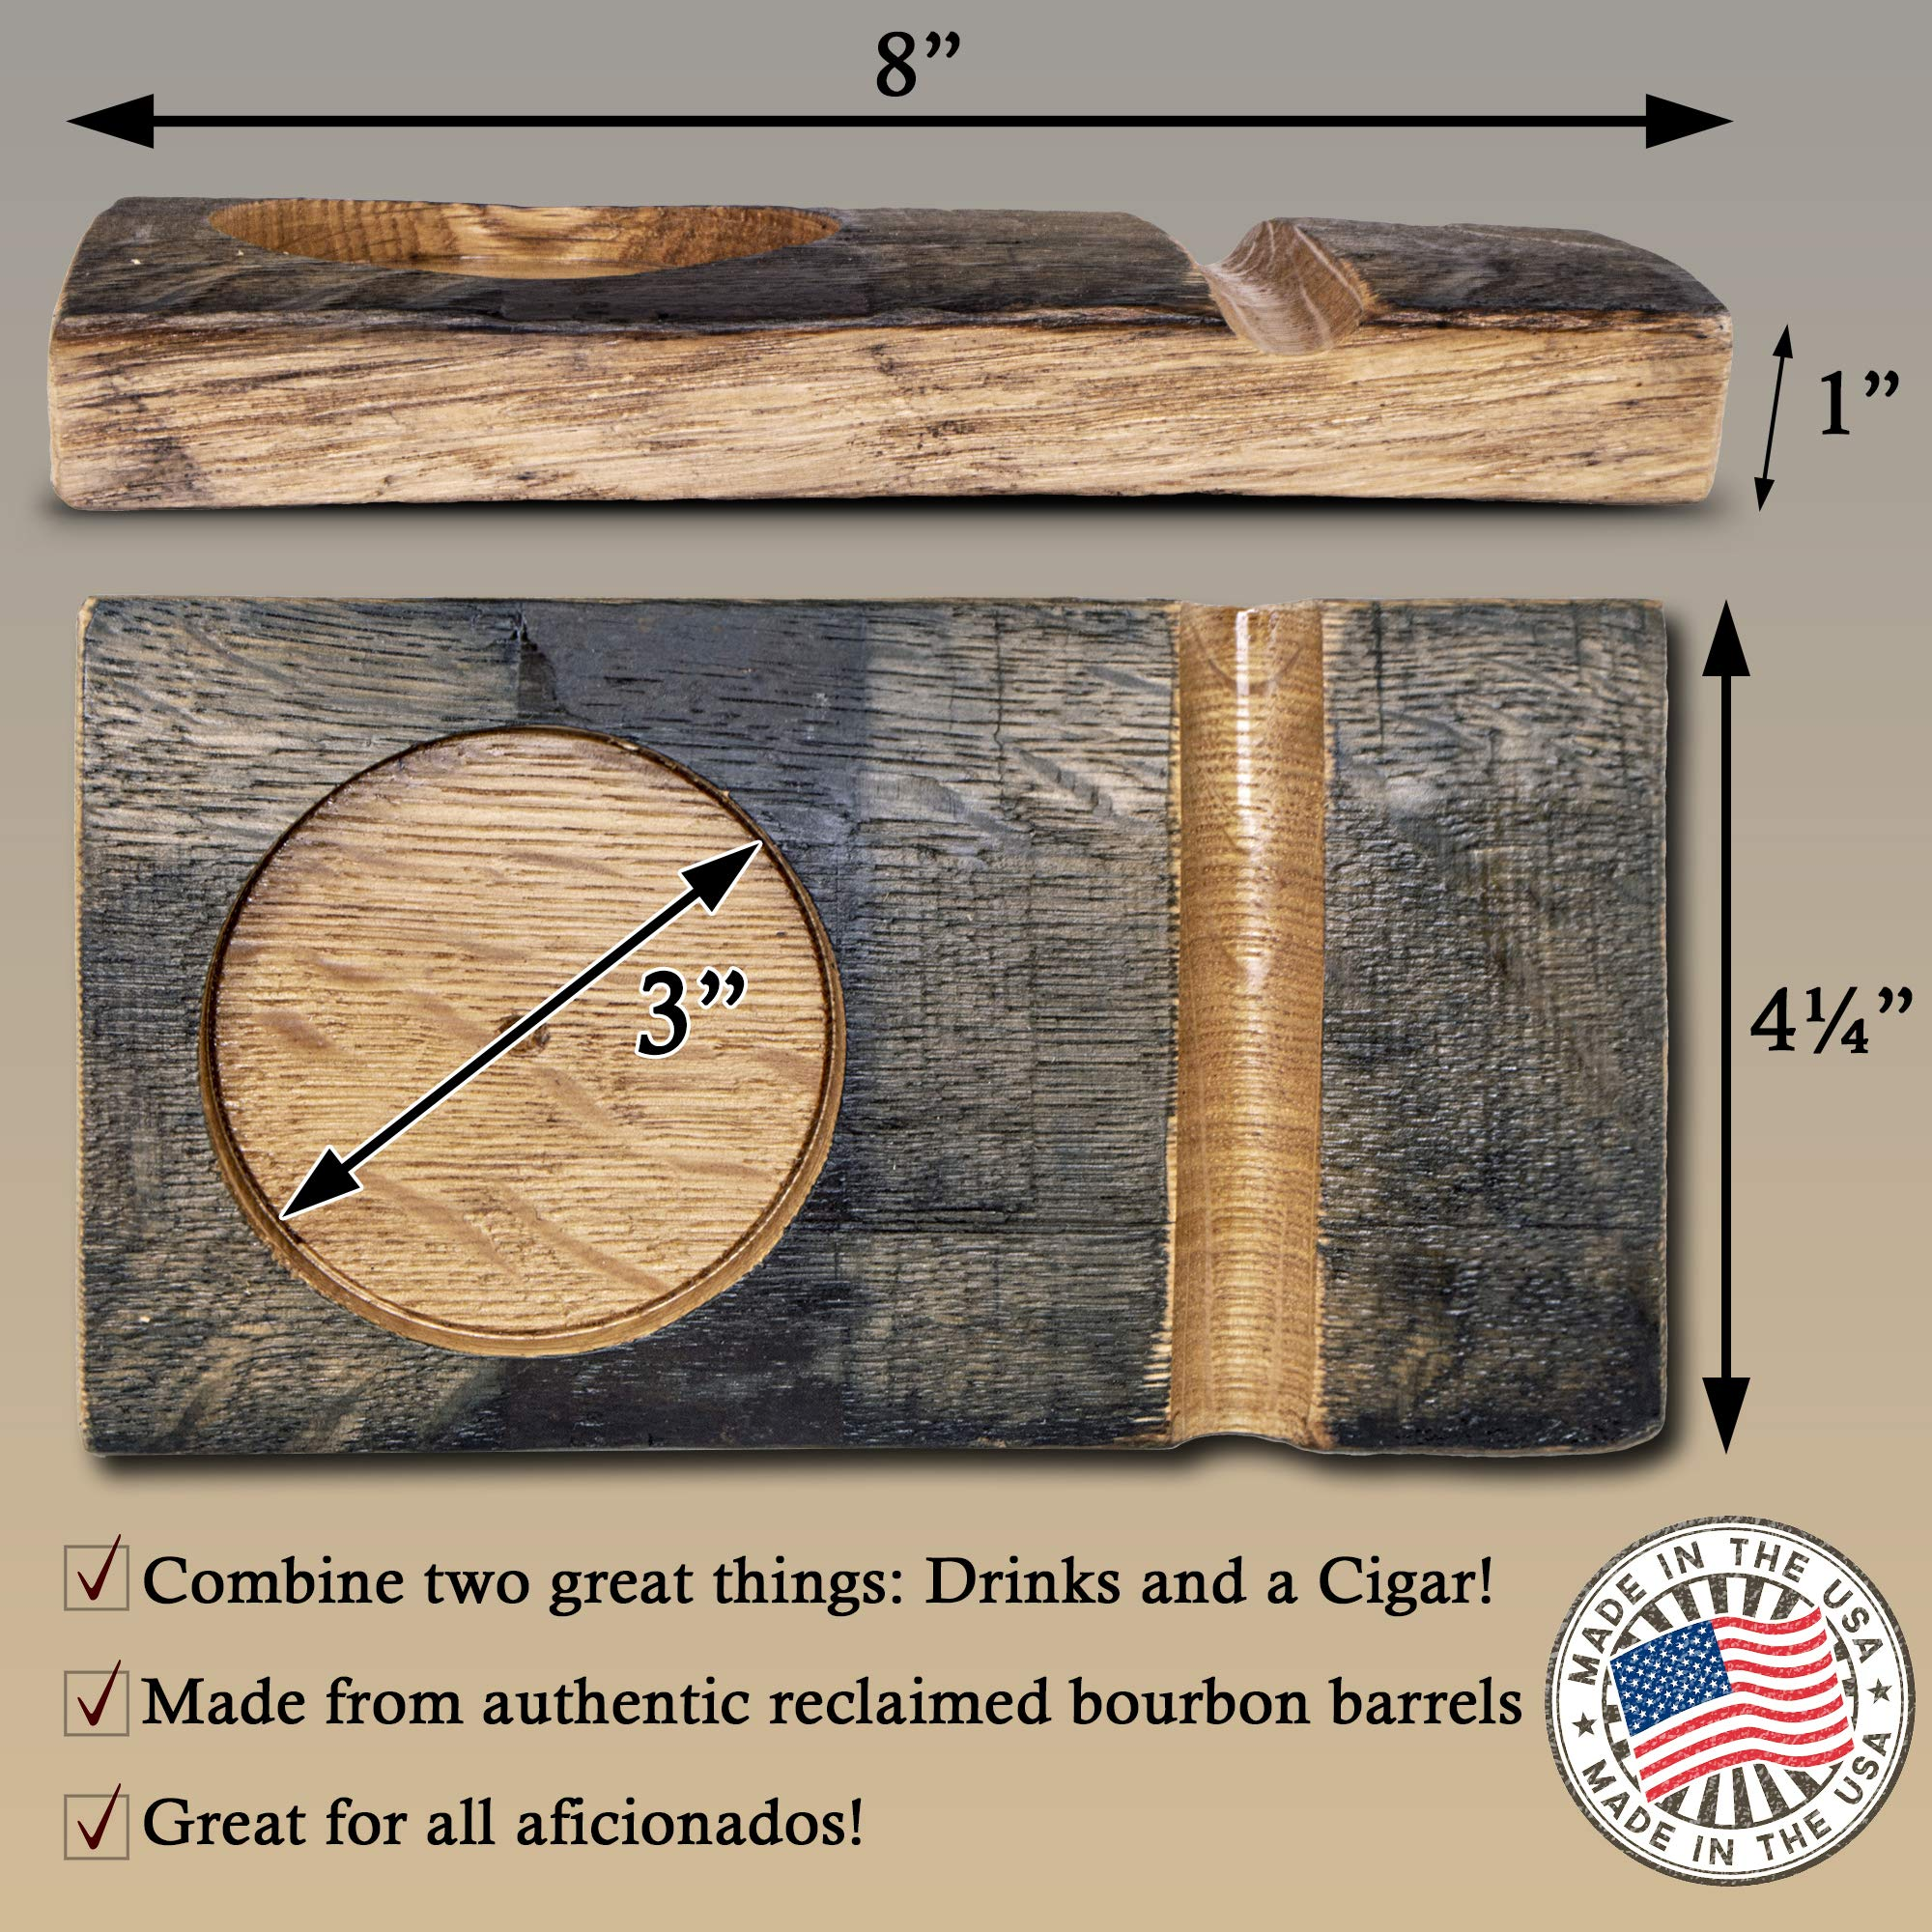 Handcrafted Rustic Wooden Whiskey Glass and Cigar Holder Tray Gift Set with Carved Wood Board and Highball Glass by BRIAR AND OAK WWW.BRIARANDOAK.COM (Image #2)